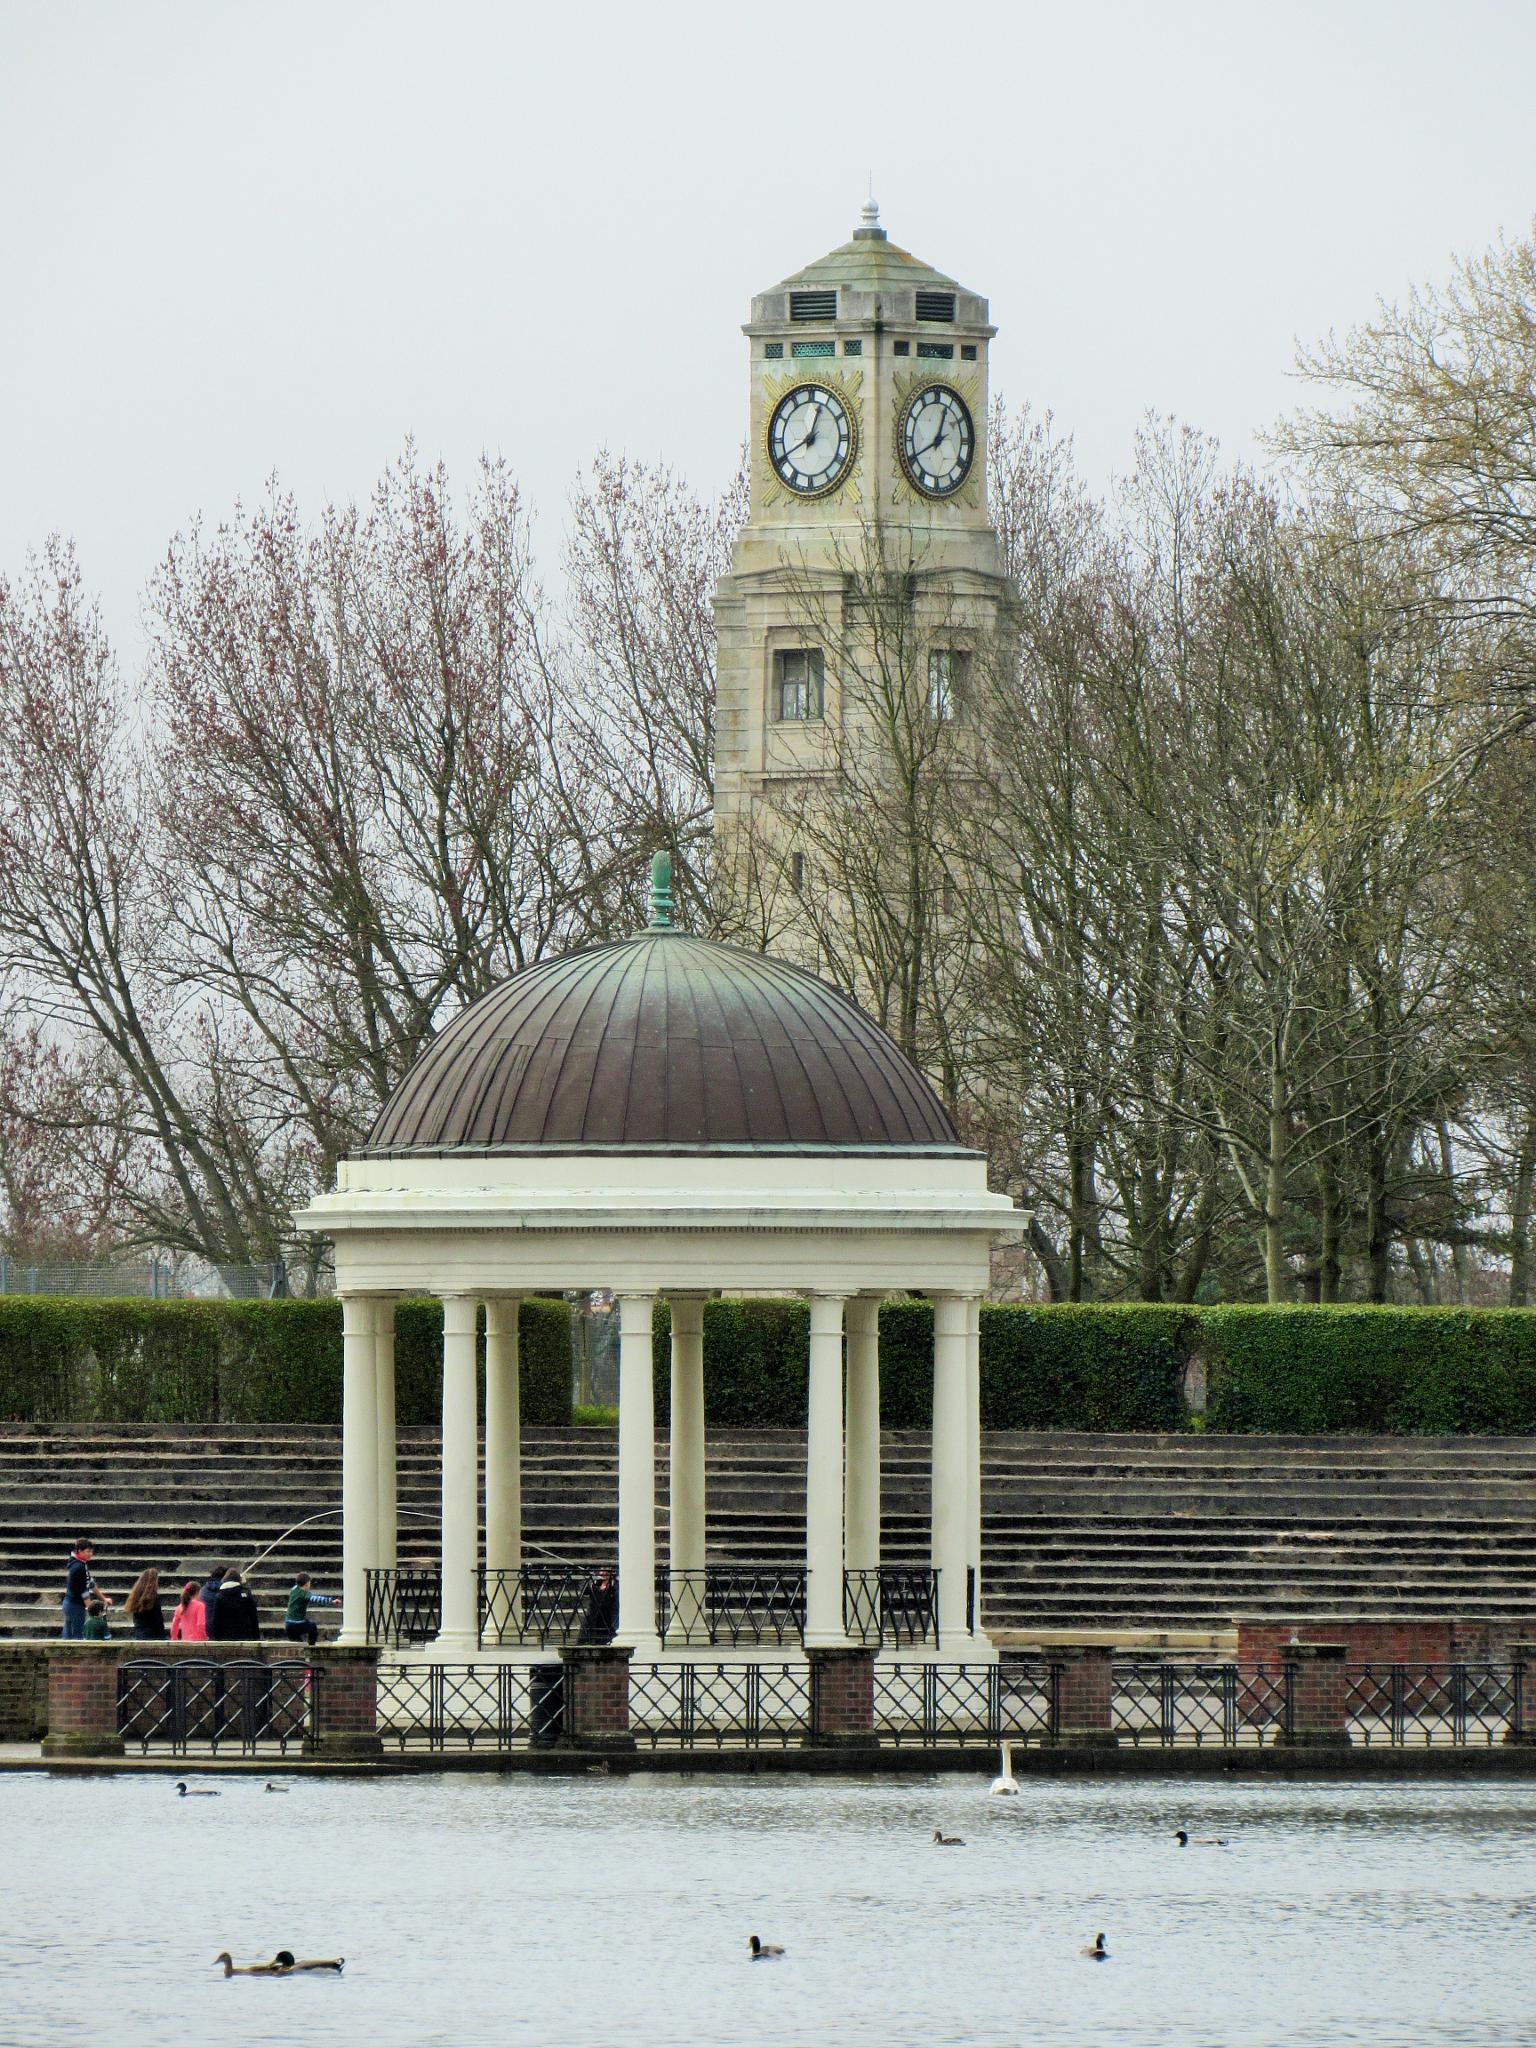 Band Stand & Clock Tower by Geoffrey Ackers